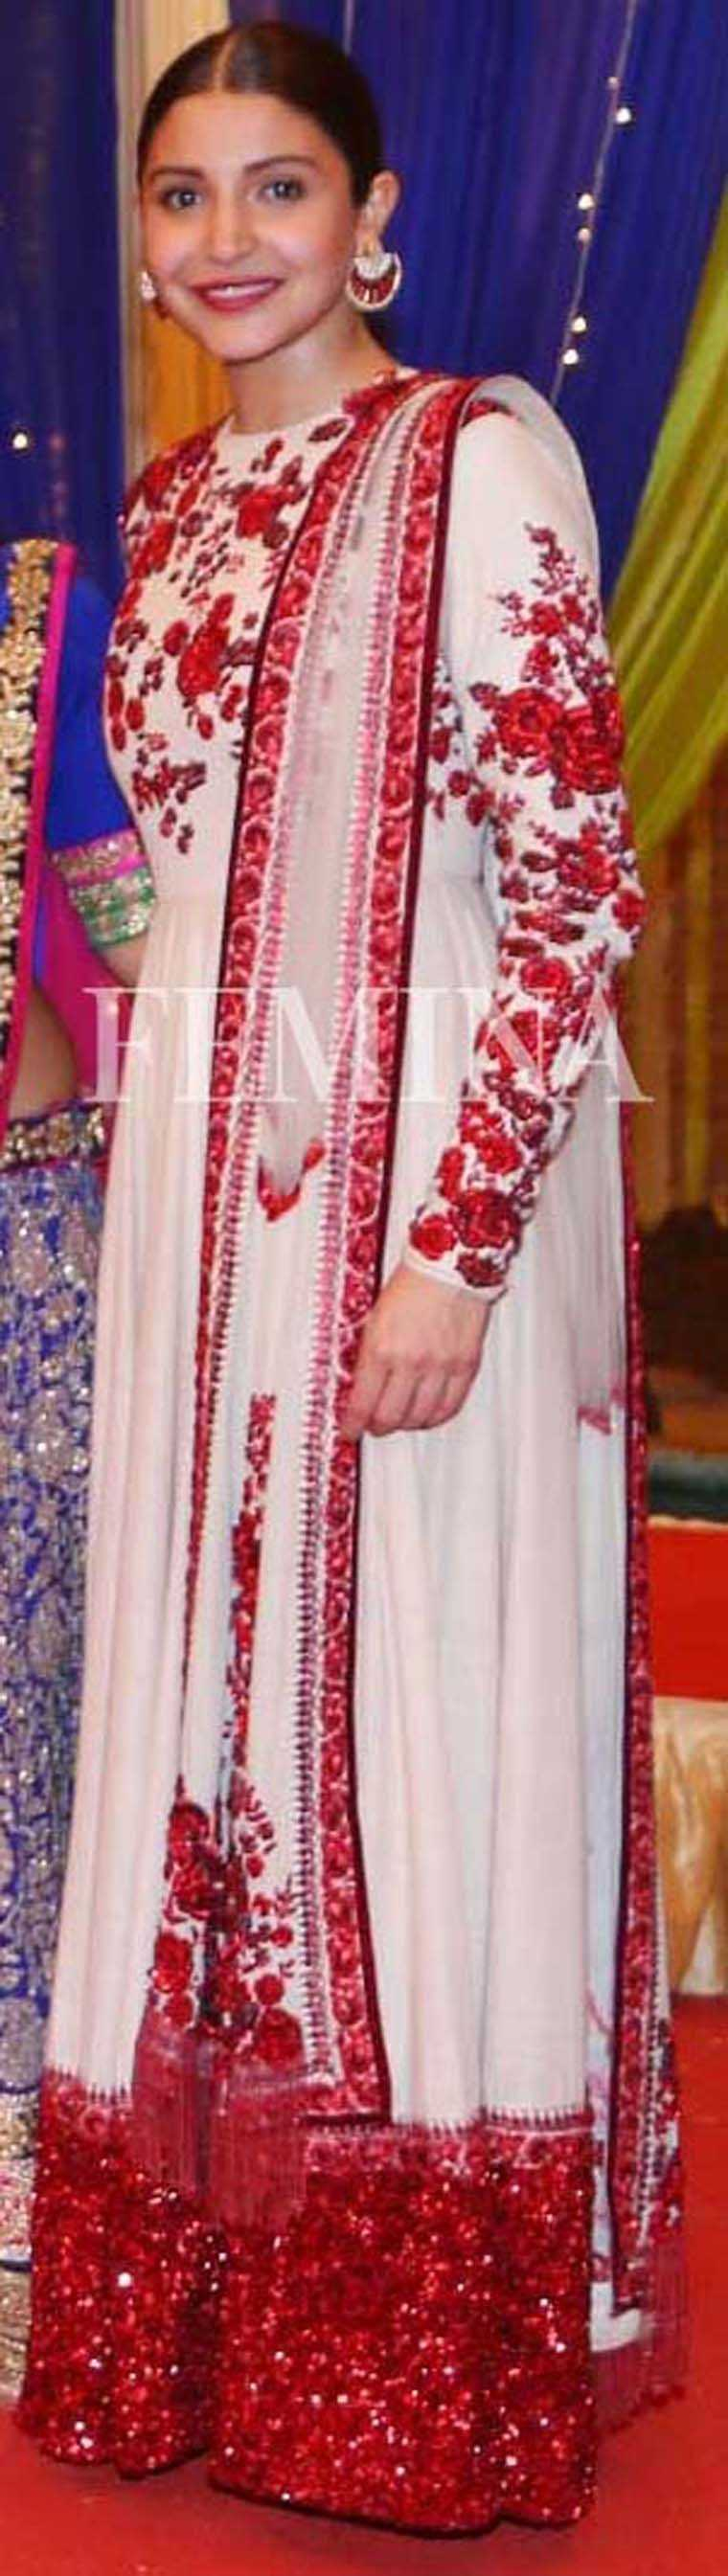 Anushka Sharma For Sultan promotions, Anushka chose an elegant Sabyasachi anarkali. Hair pulled back in slick bun, she finished her look with ruby earrings by Curio Cottage.